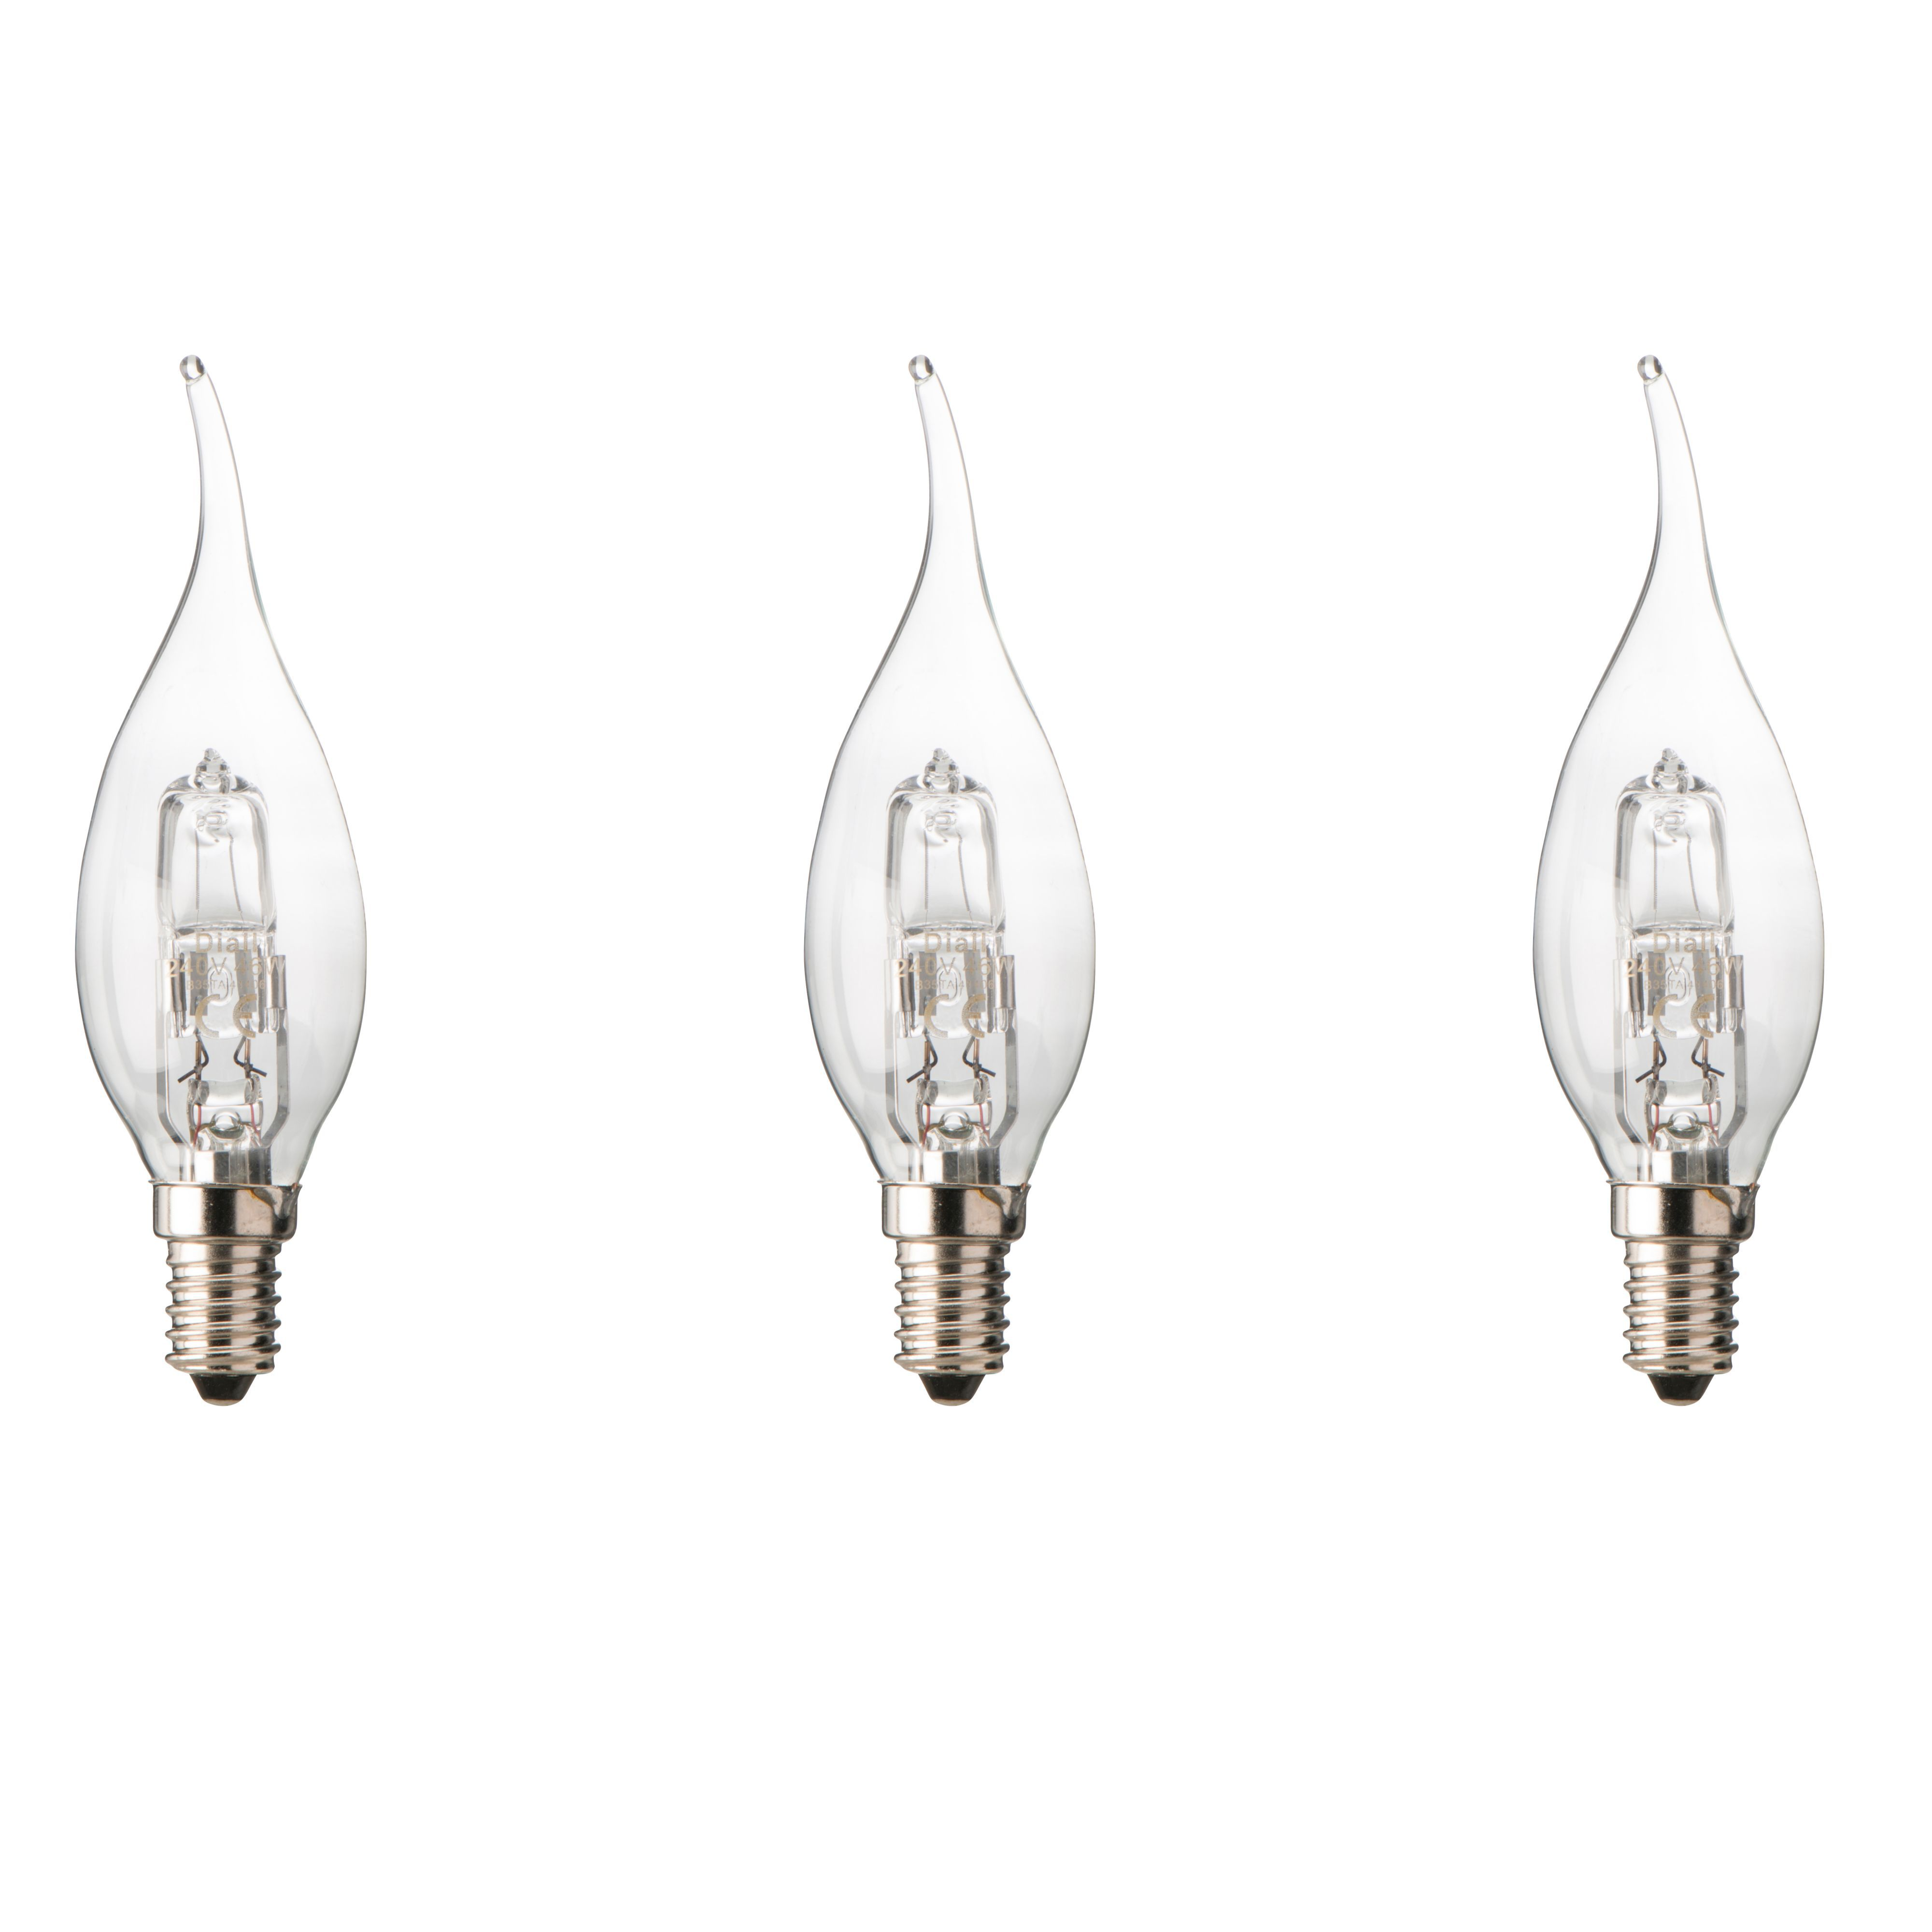 Diall E14 46W Halogen Dimmable Candle bent tip Light bulb